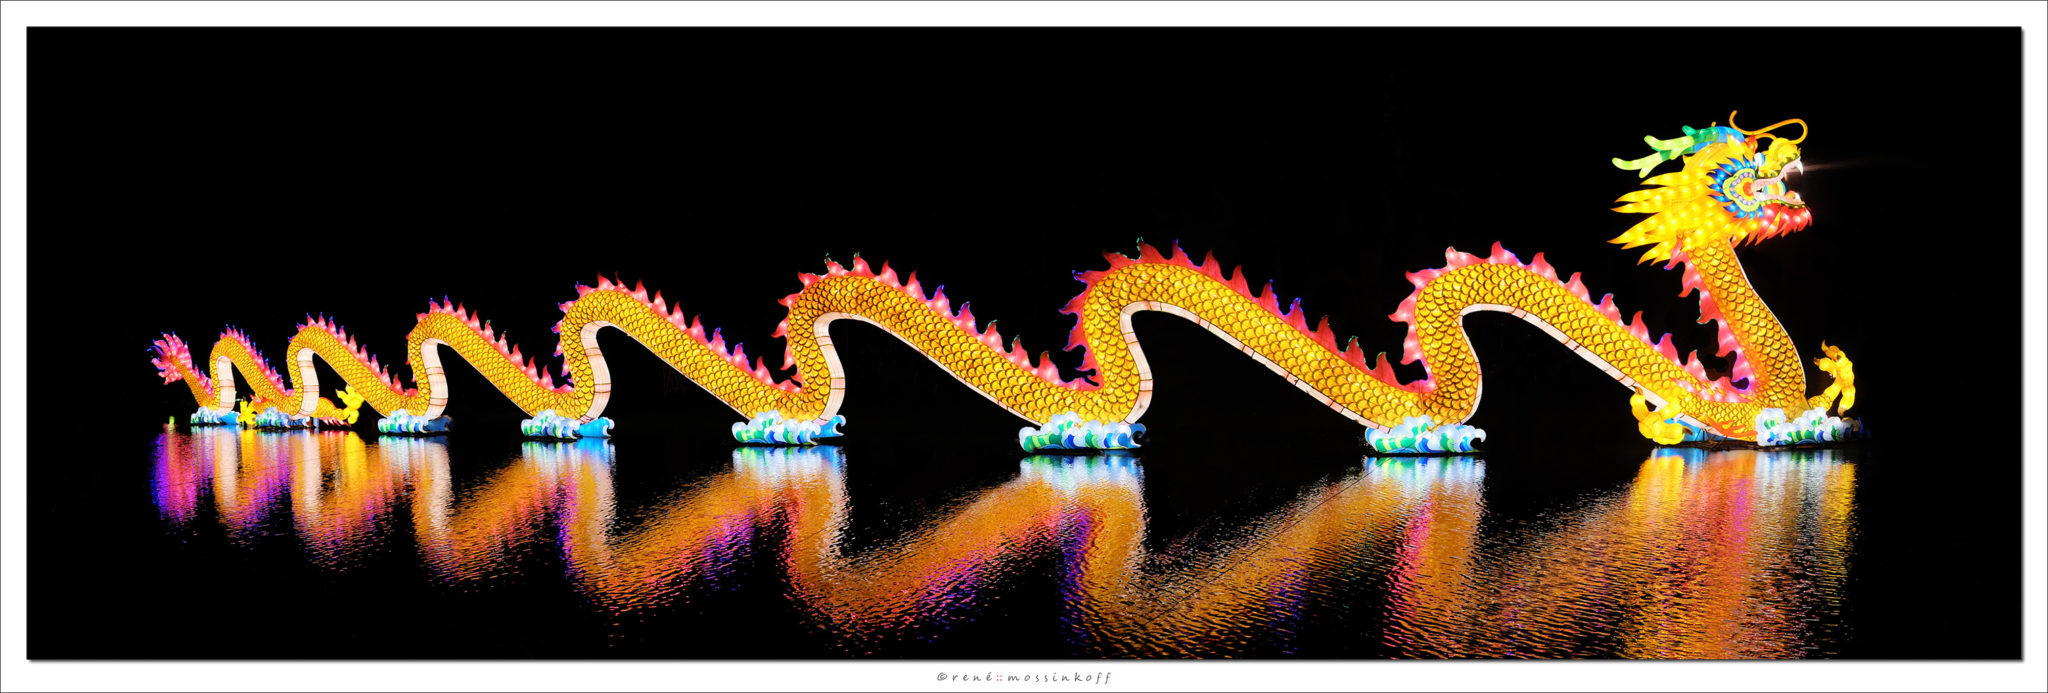 A 192-foot dragon is part of the amazing China Lights exhibit in New Orleans. (Photo via remossi.nl)